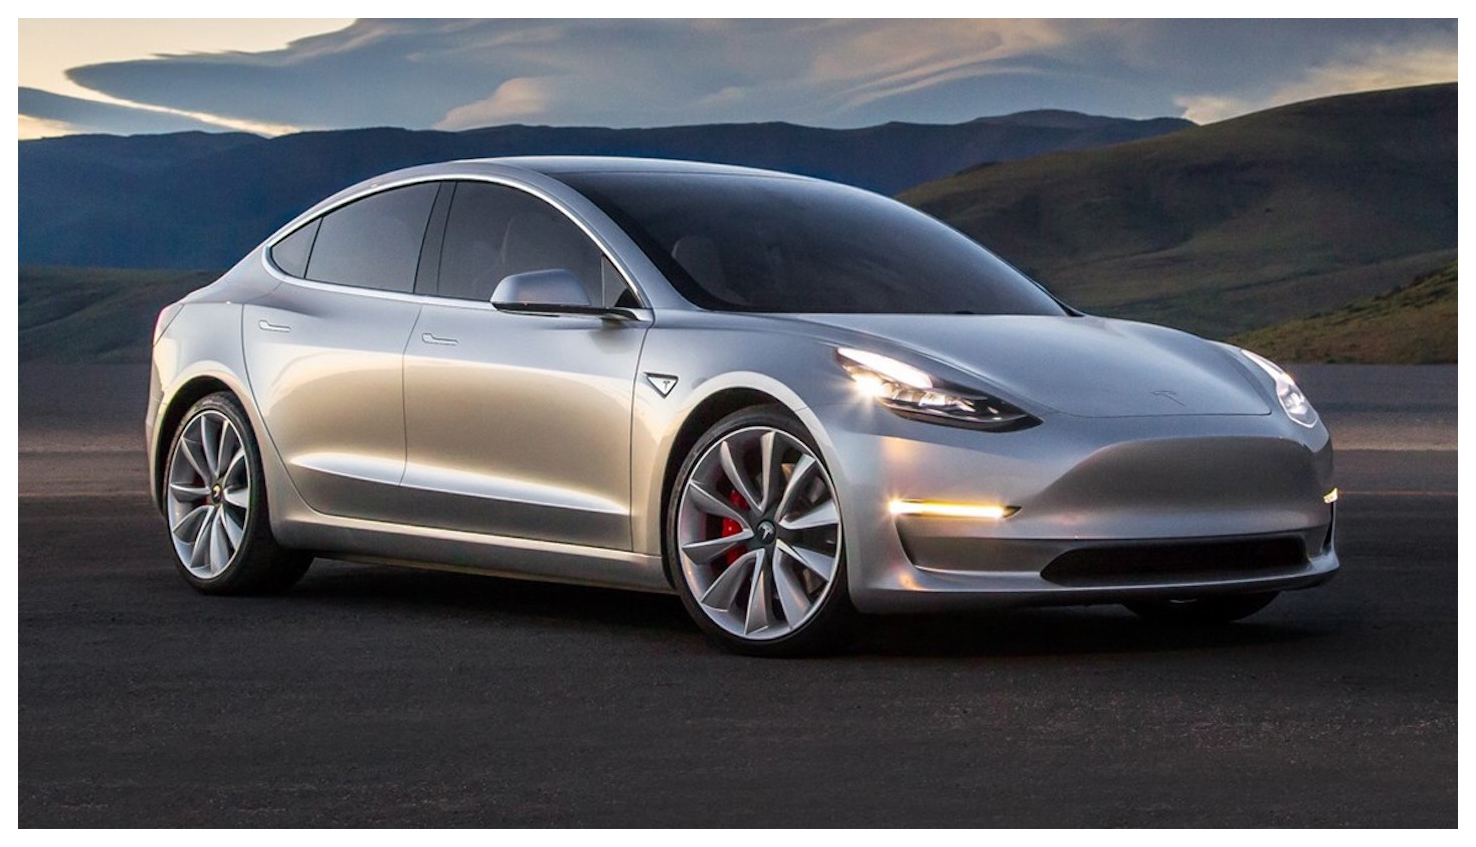 Tesla S Model 3 By Jim Corbran Don T Let It Be Said That In This Corner We Re Against Electric Cars A Great Concept Keeps Improving With Each